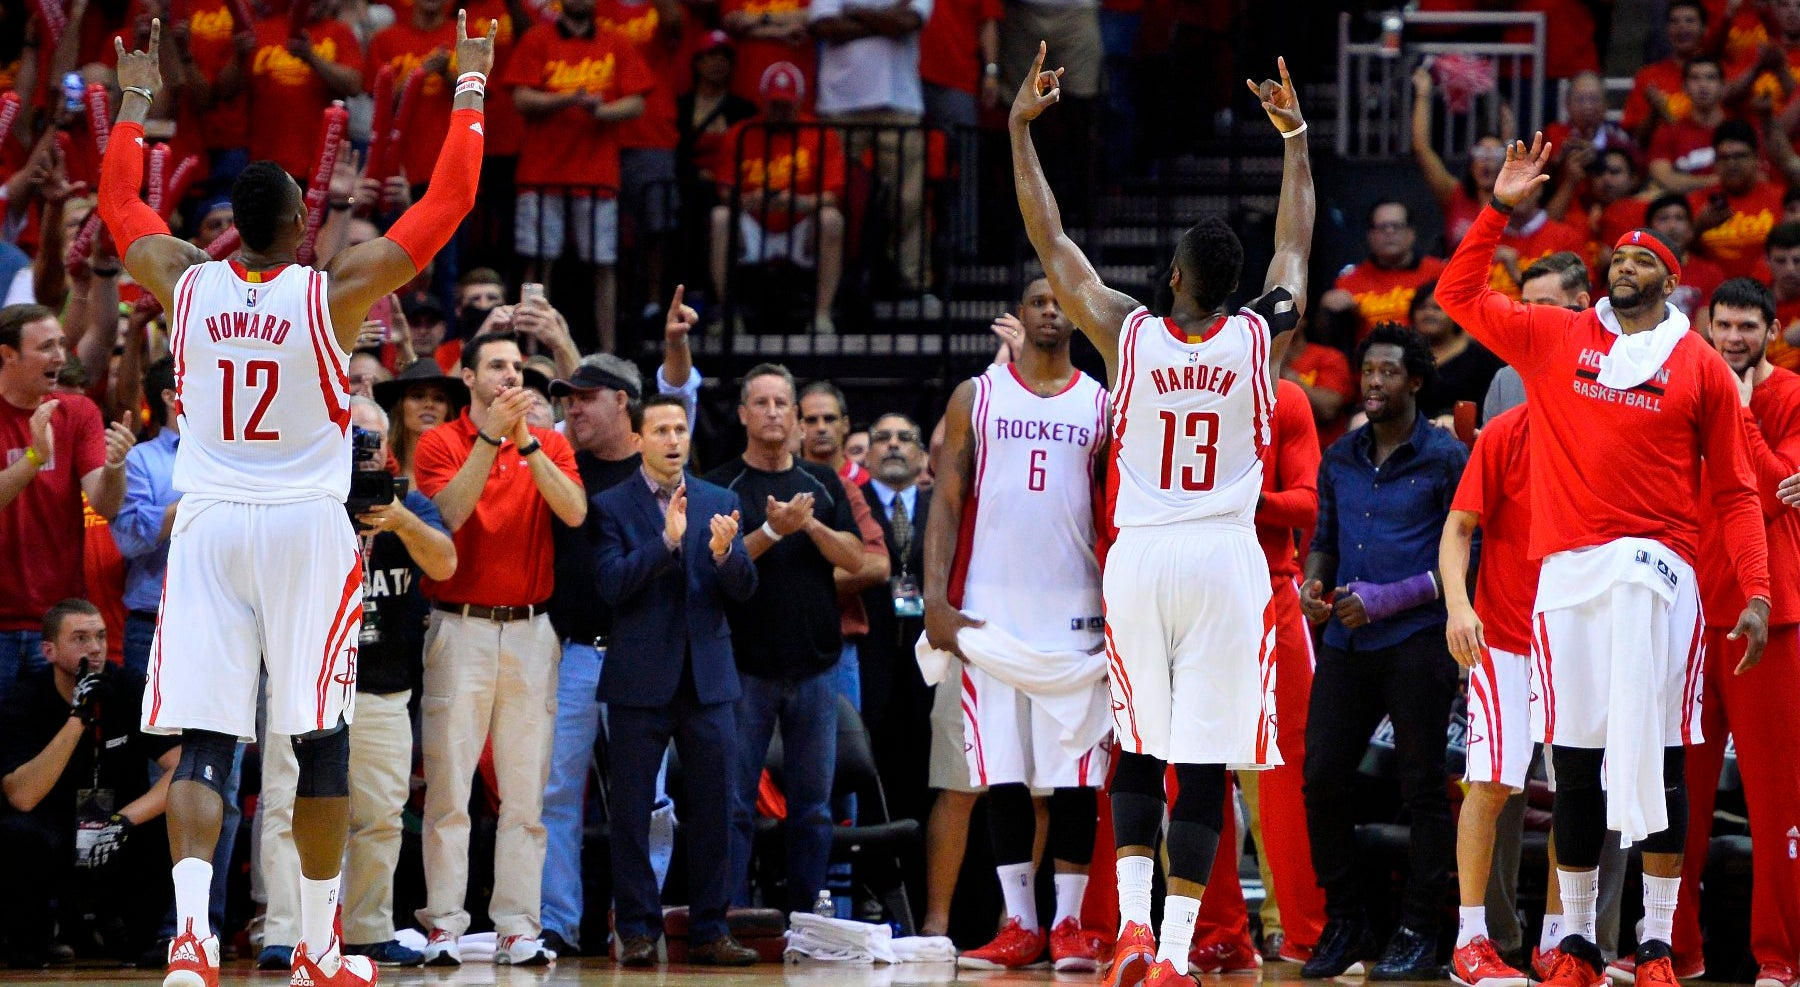 Dono dos Houston Rockets anuncia venda do clube